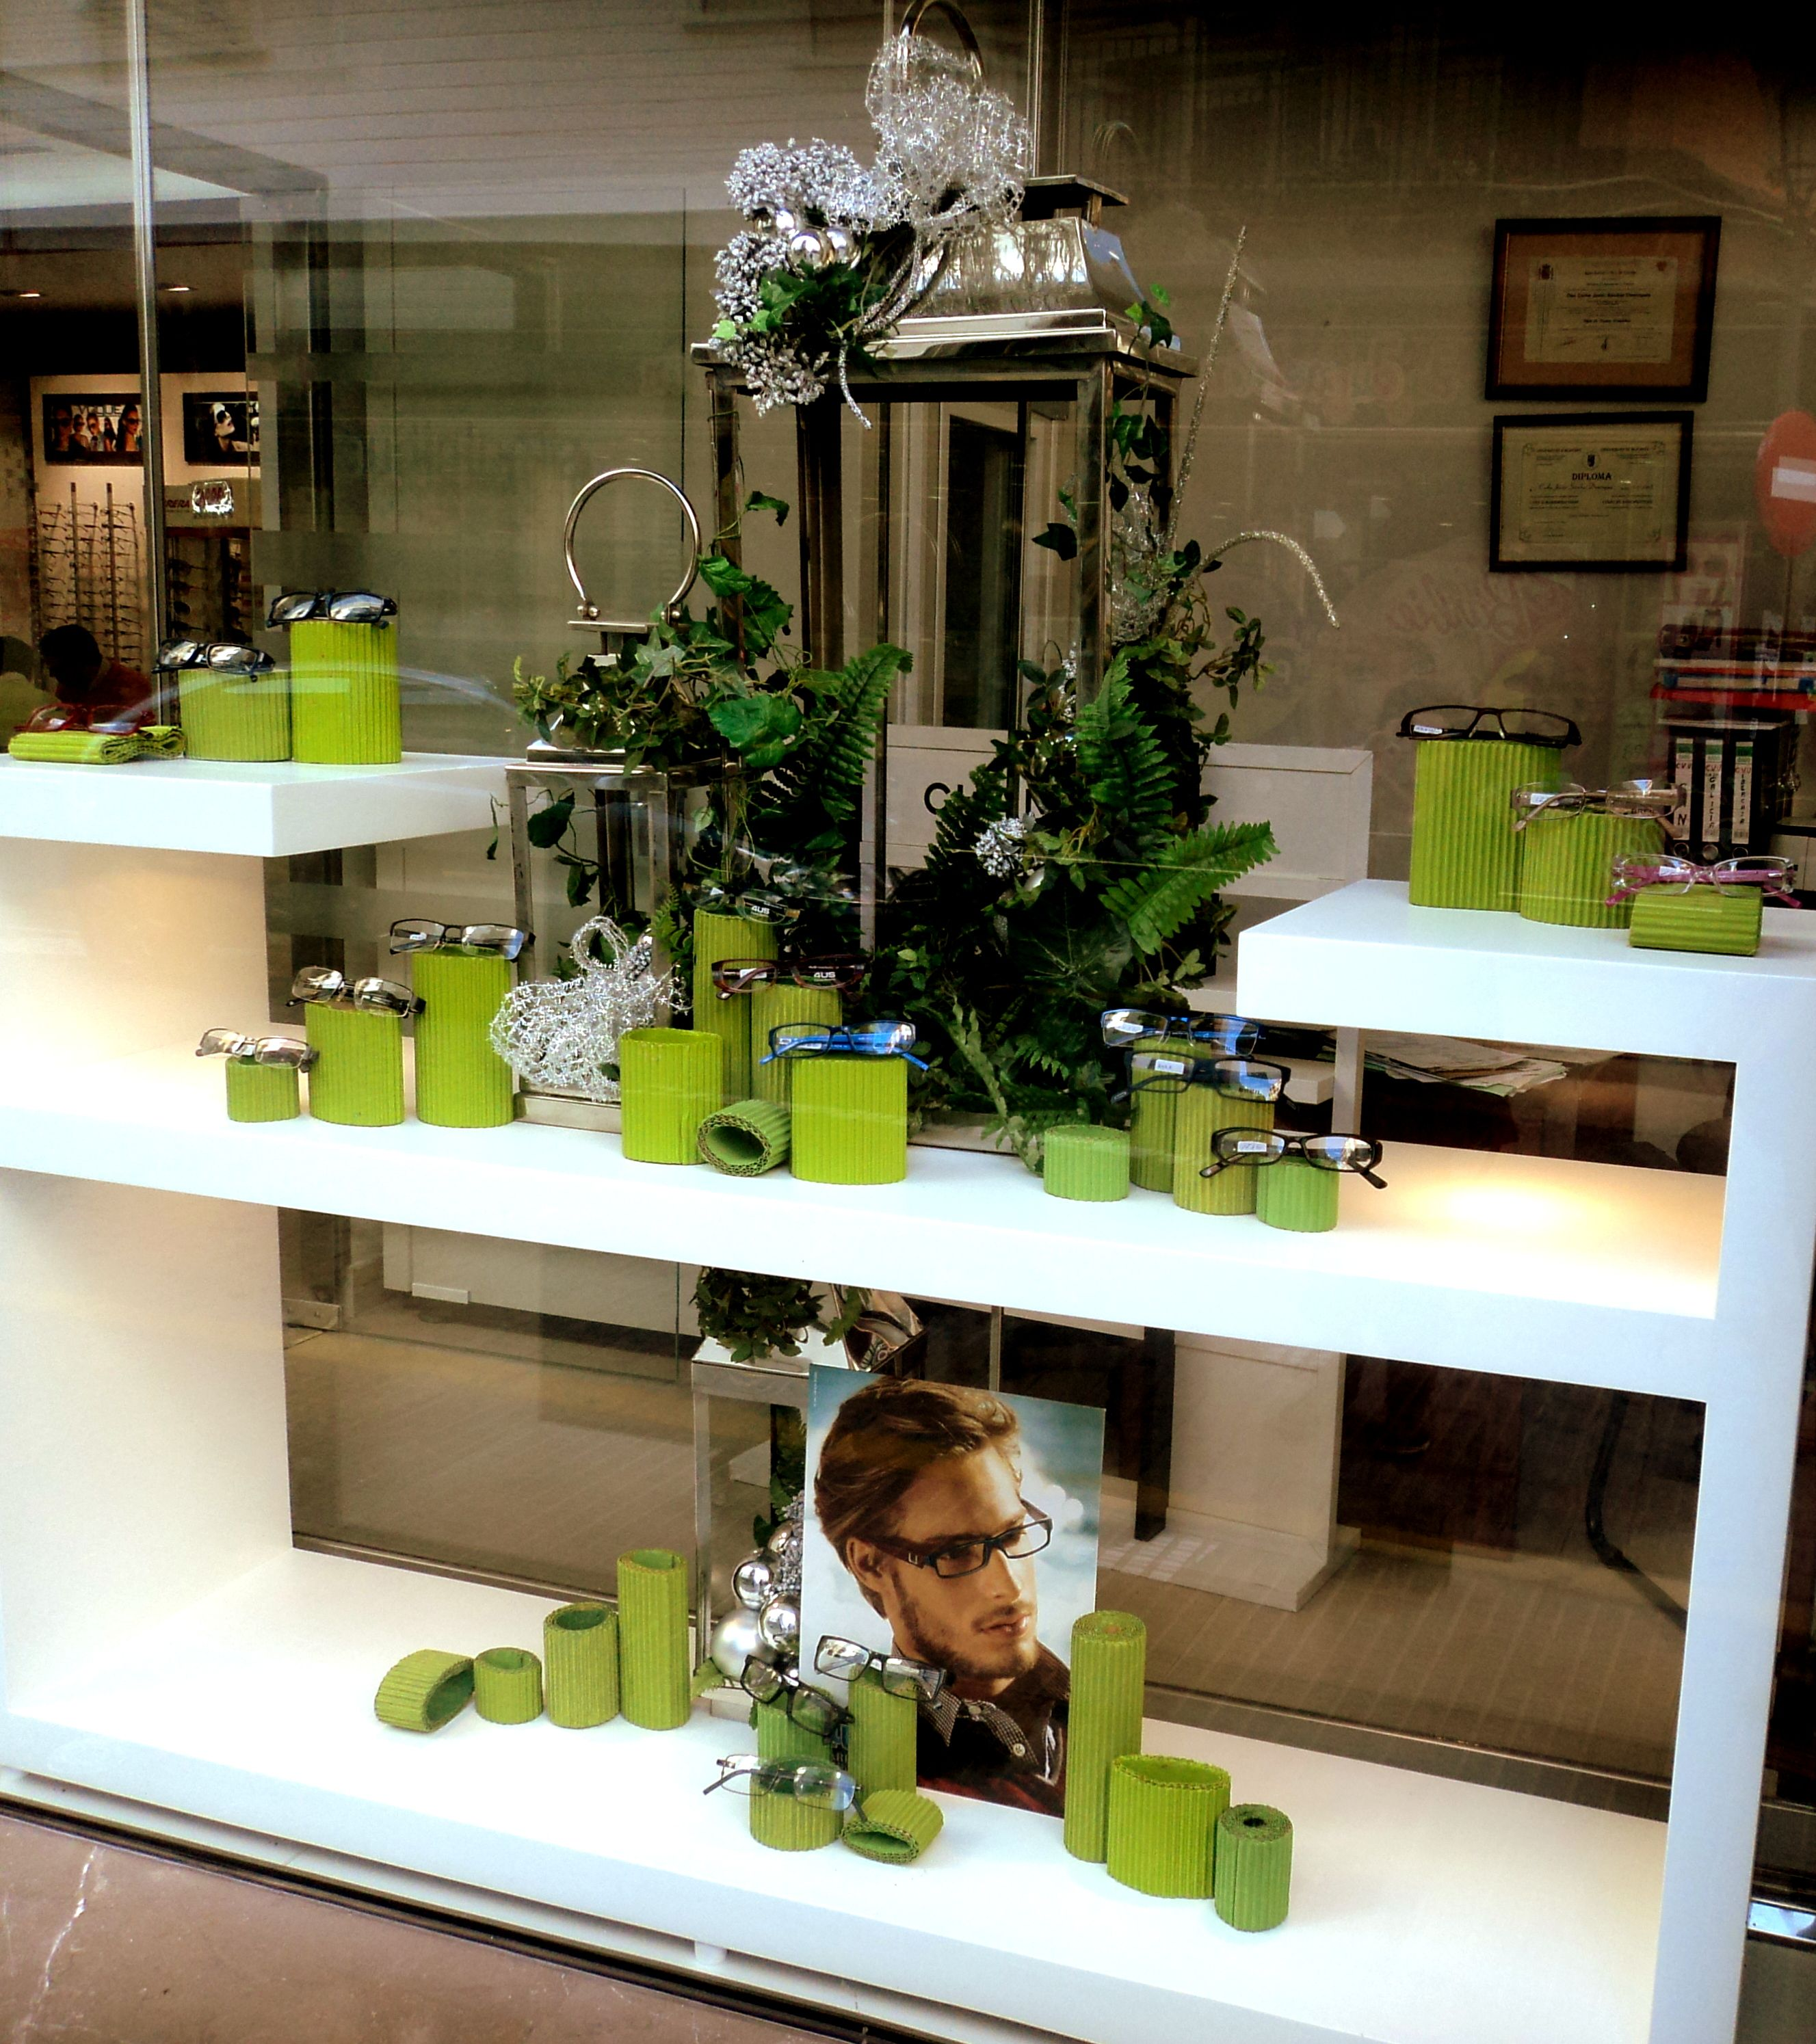 640ed74d8377a Mit Dosen    Window Displays   Pinterest   Display, Eyewear and Shop ...